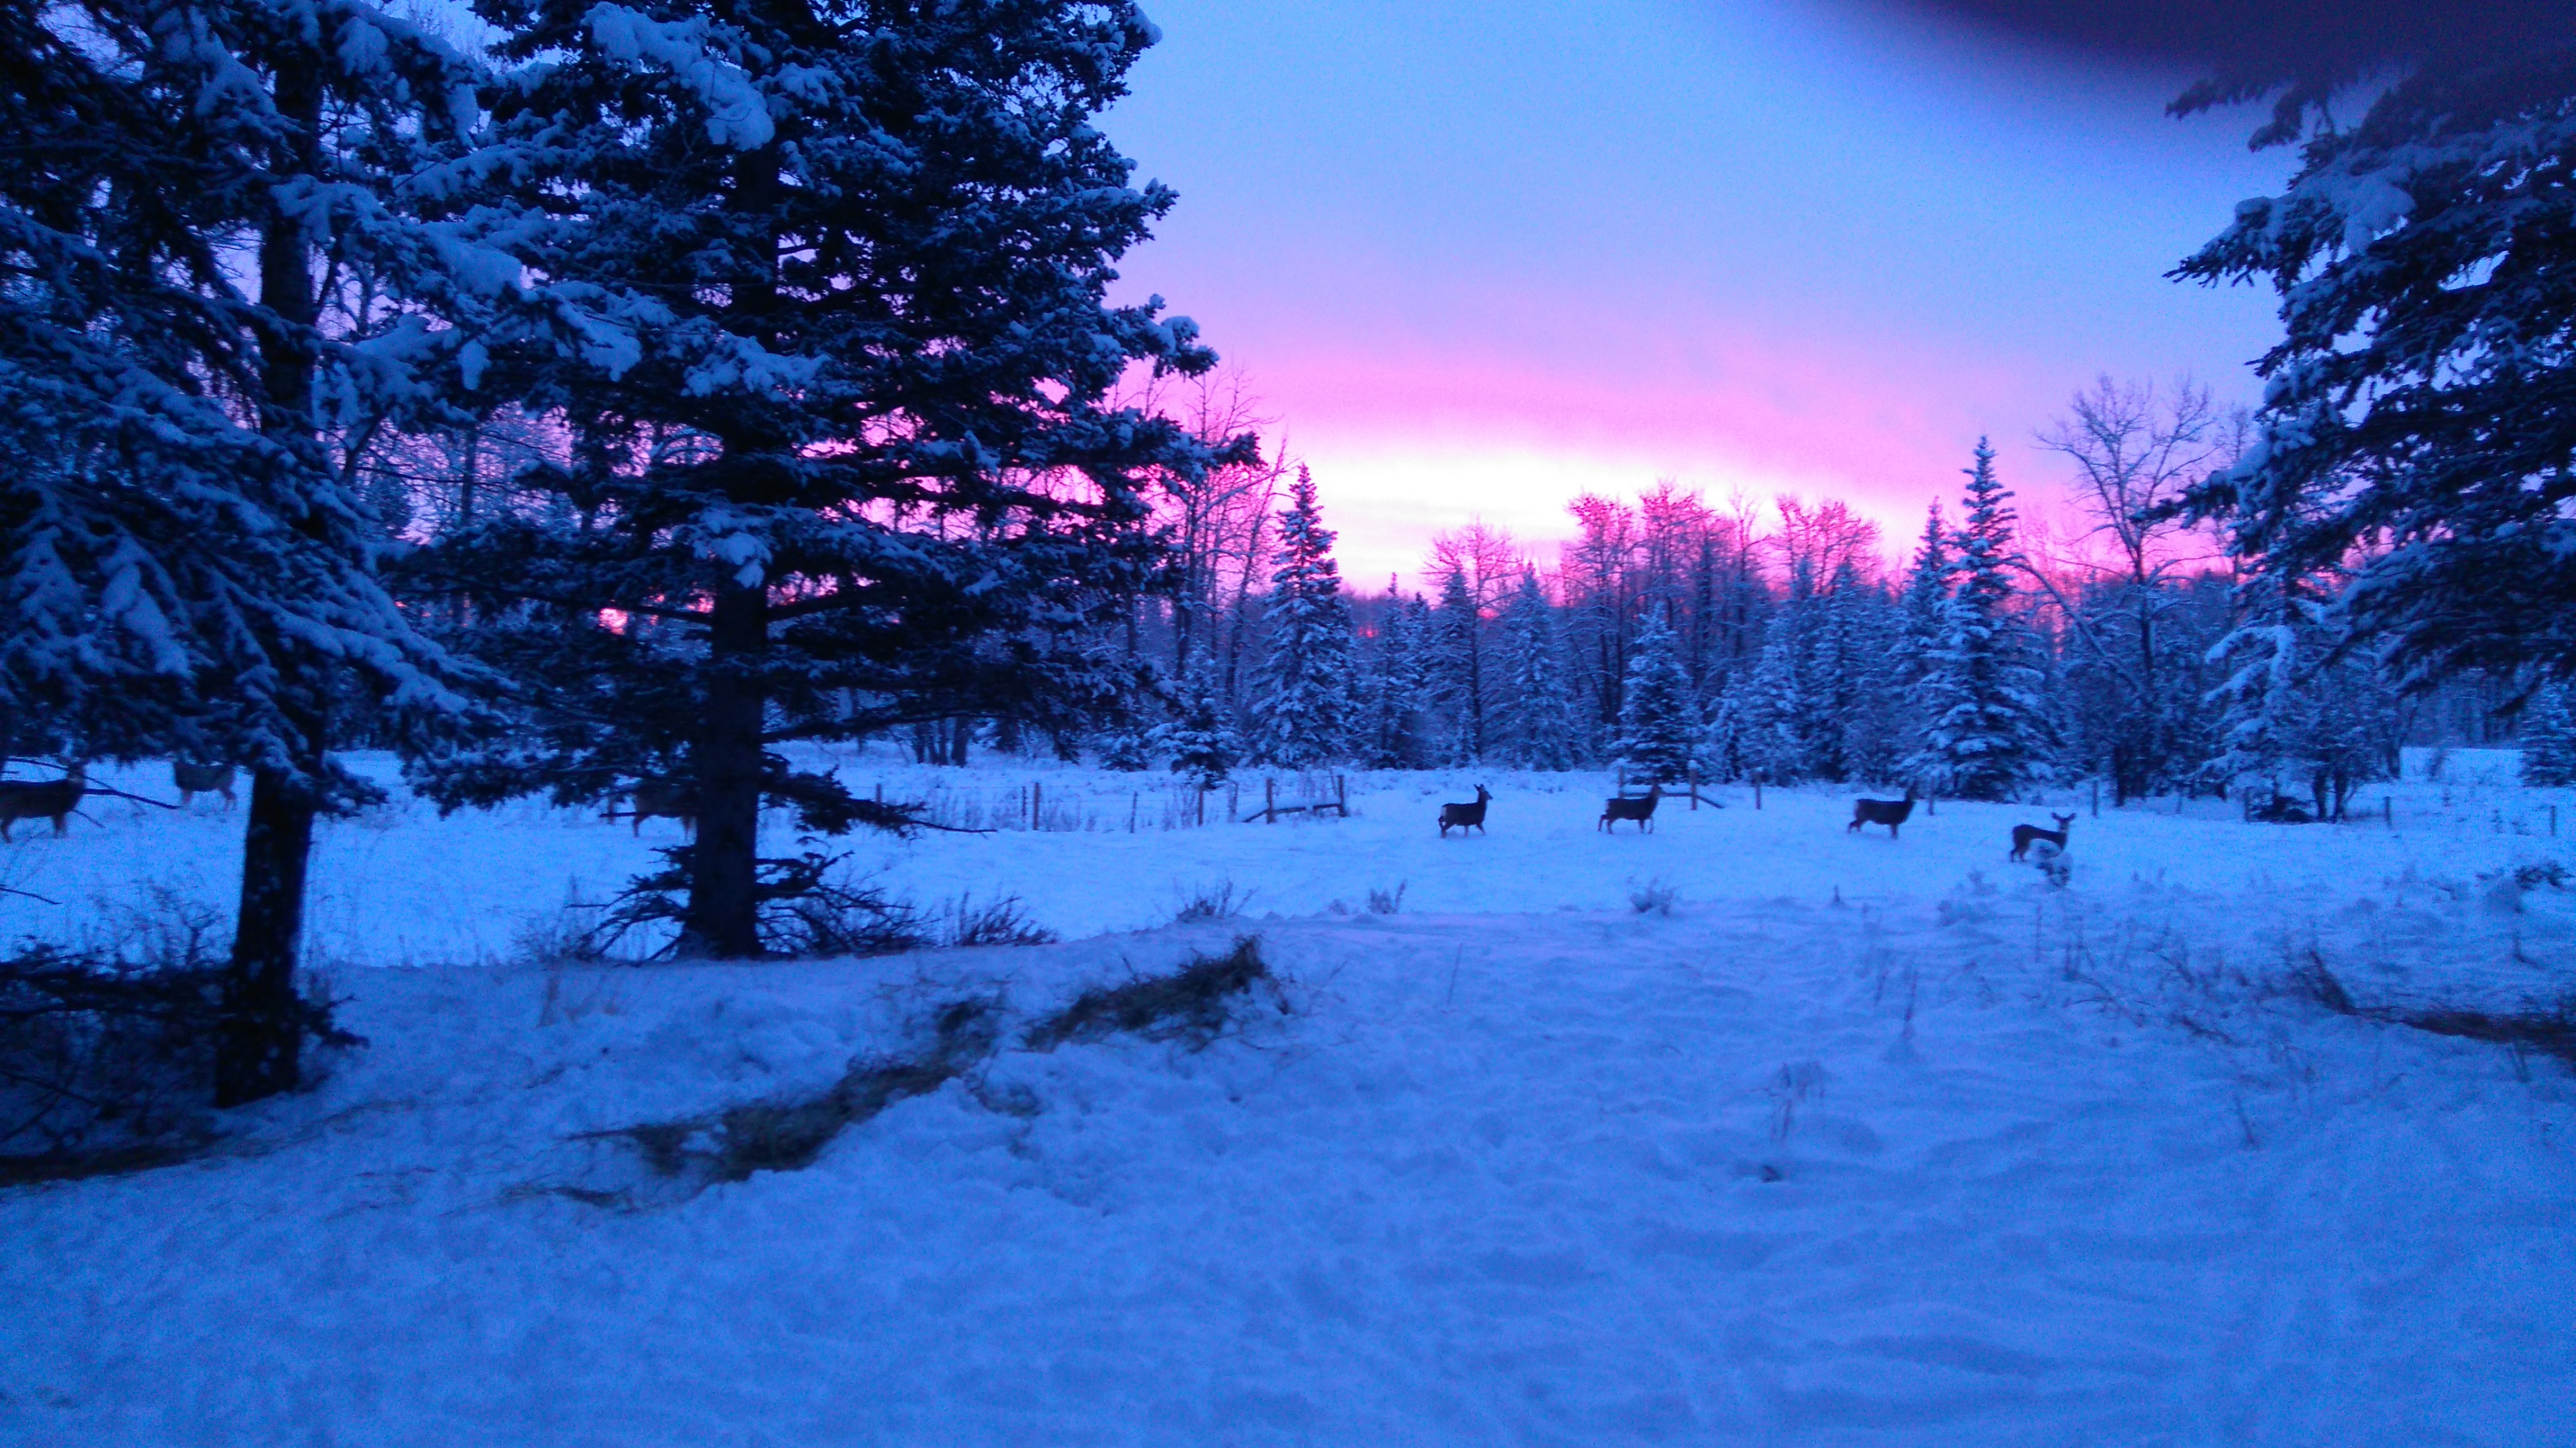 sunrise with deers